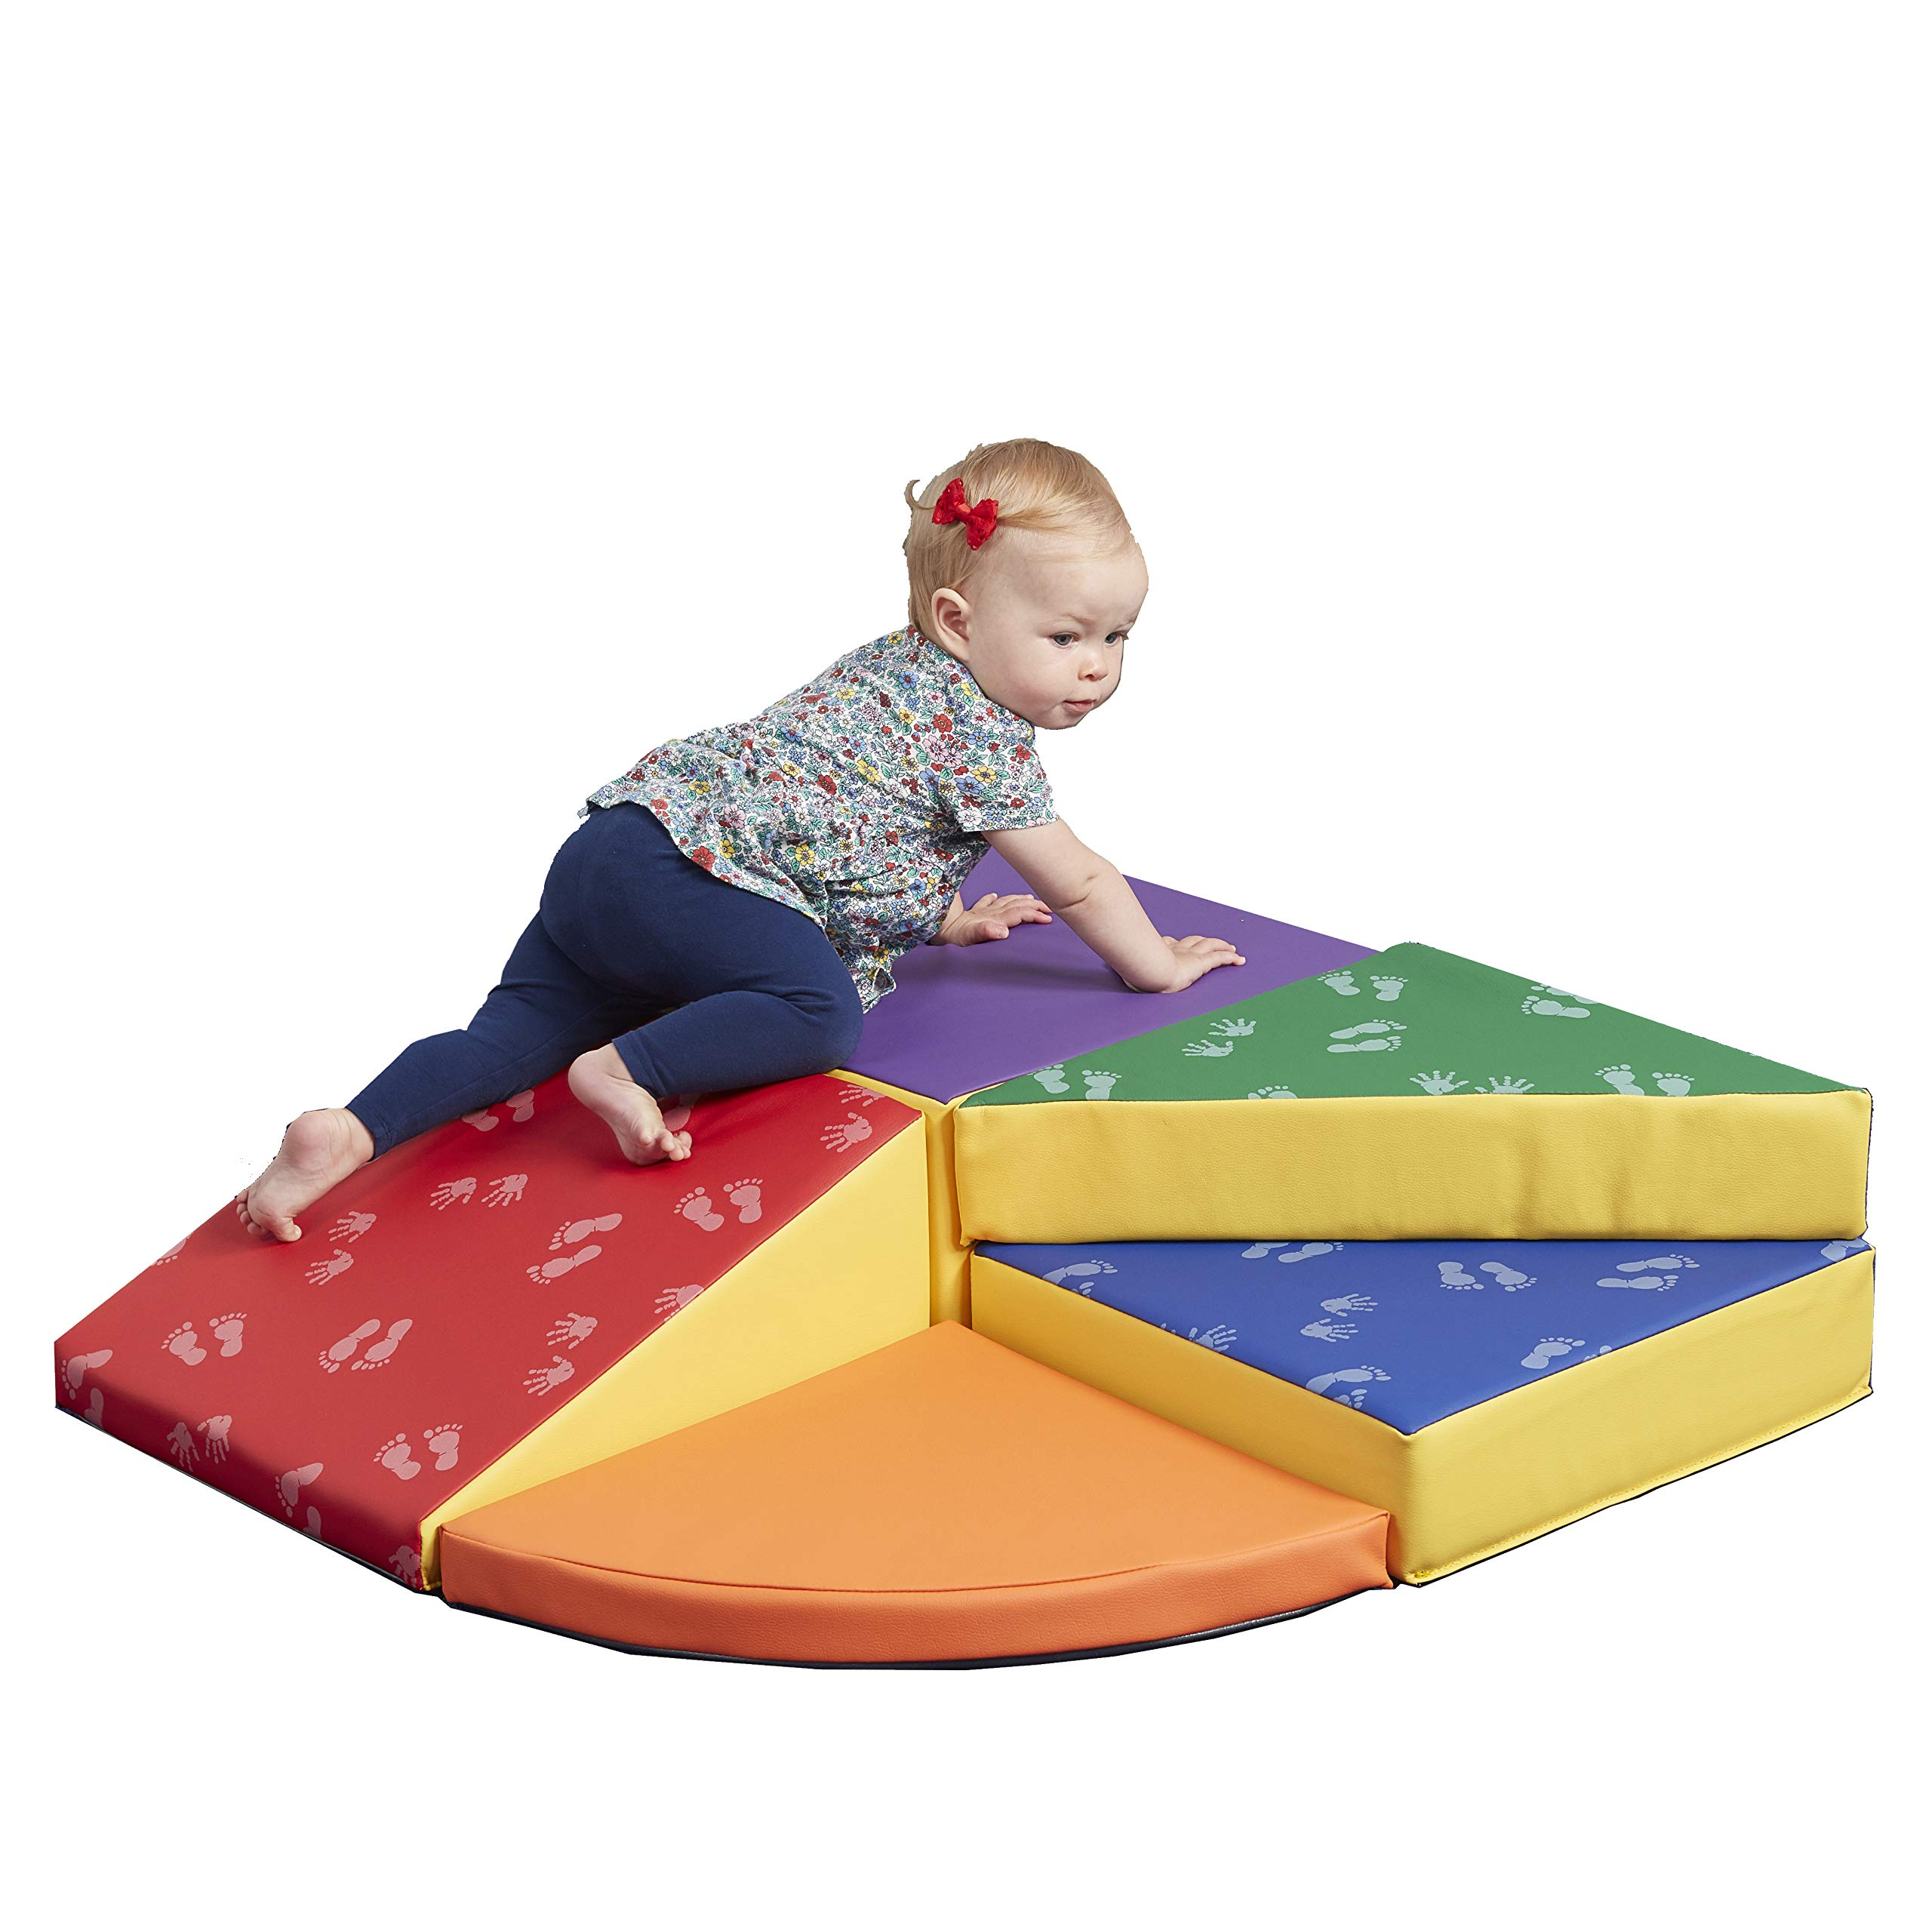 ECR4Kids SoftZone Junior Tiny Twisting Climber - Indoor Active Play Structure for Babies and Toddlers - Soft Foam Play Set, Hands & Feet (5-Piece)